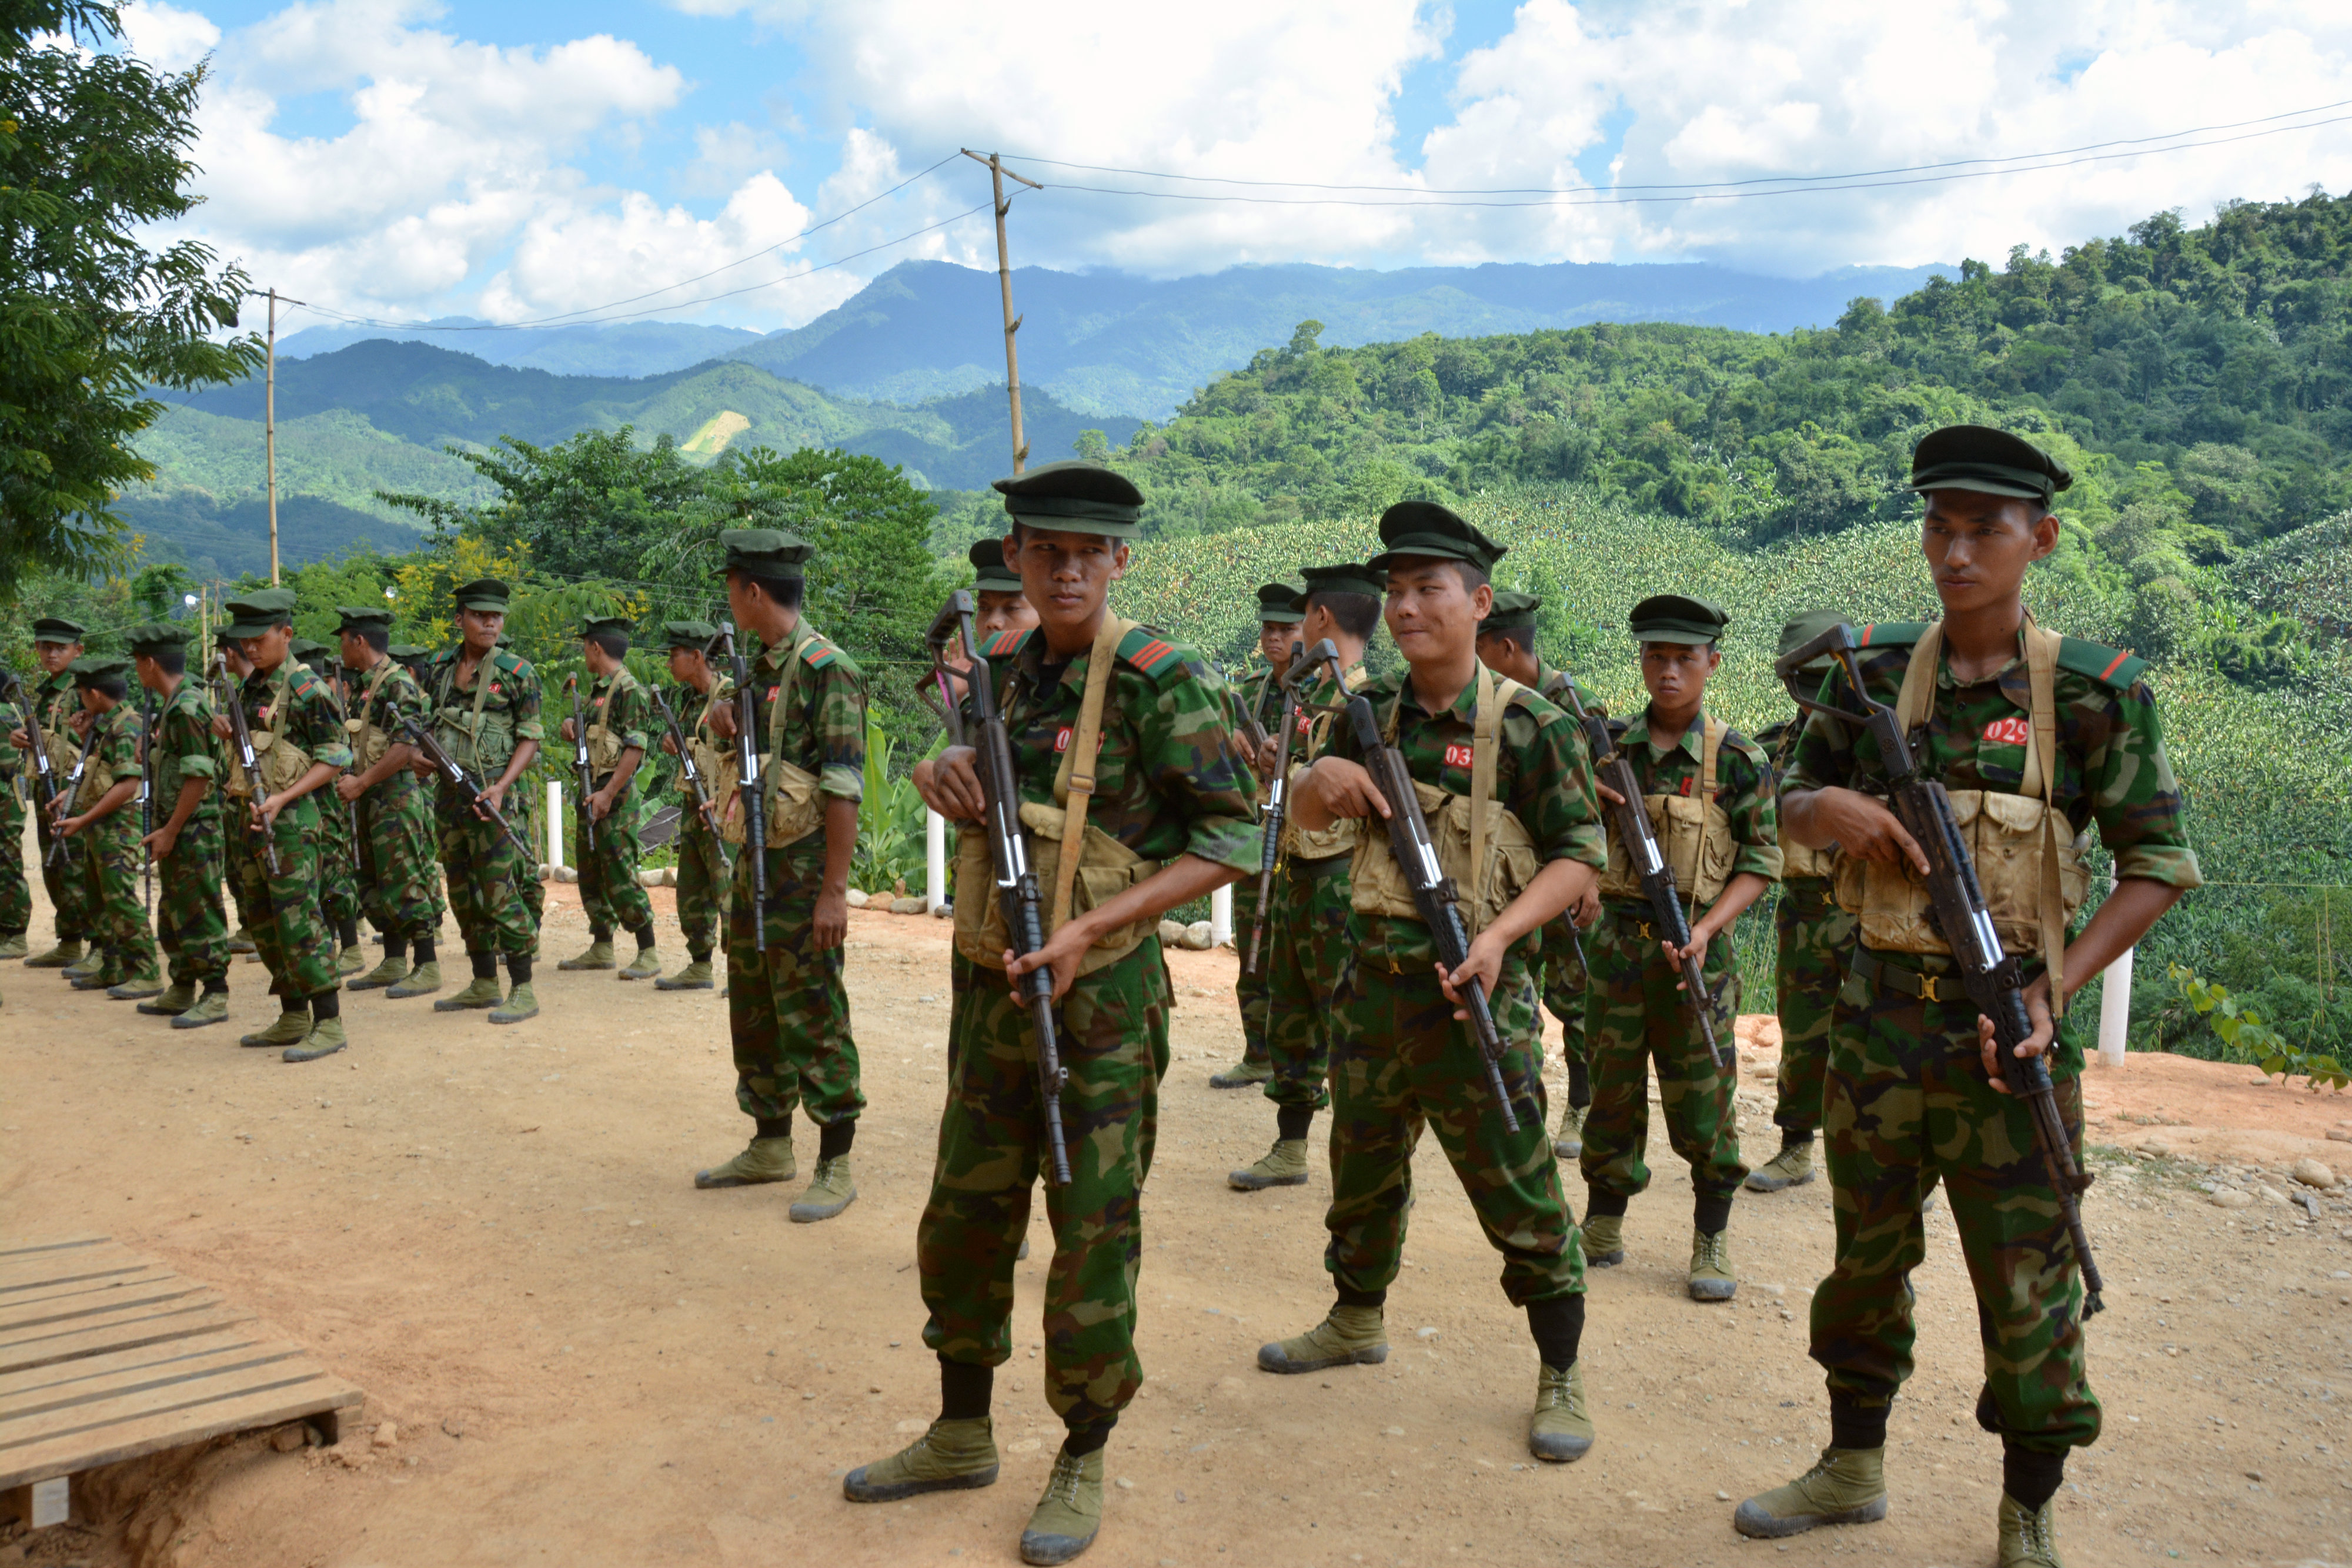 The Other Karen in Myanmar: Ethnic Minorities and the Struggle without Arms (AsiaWorld)